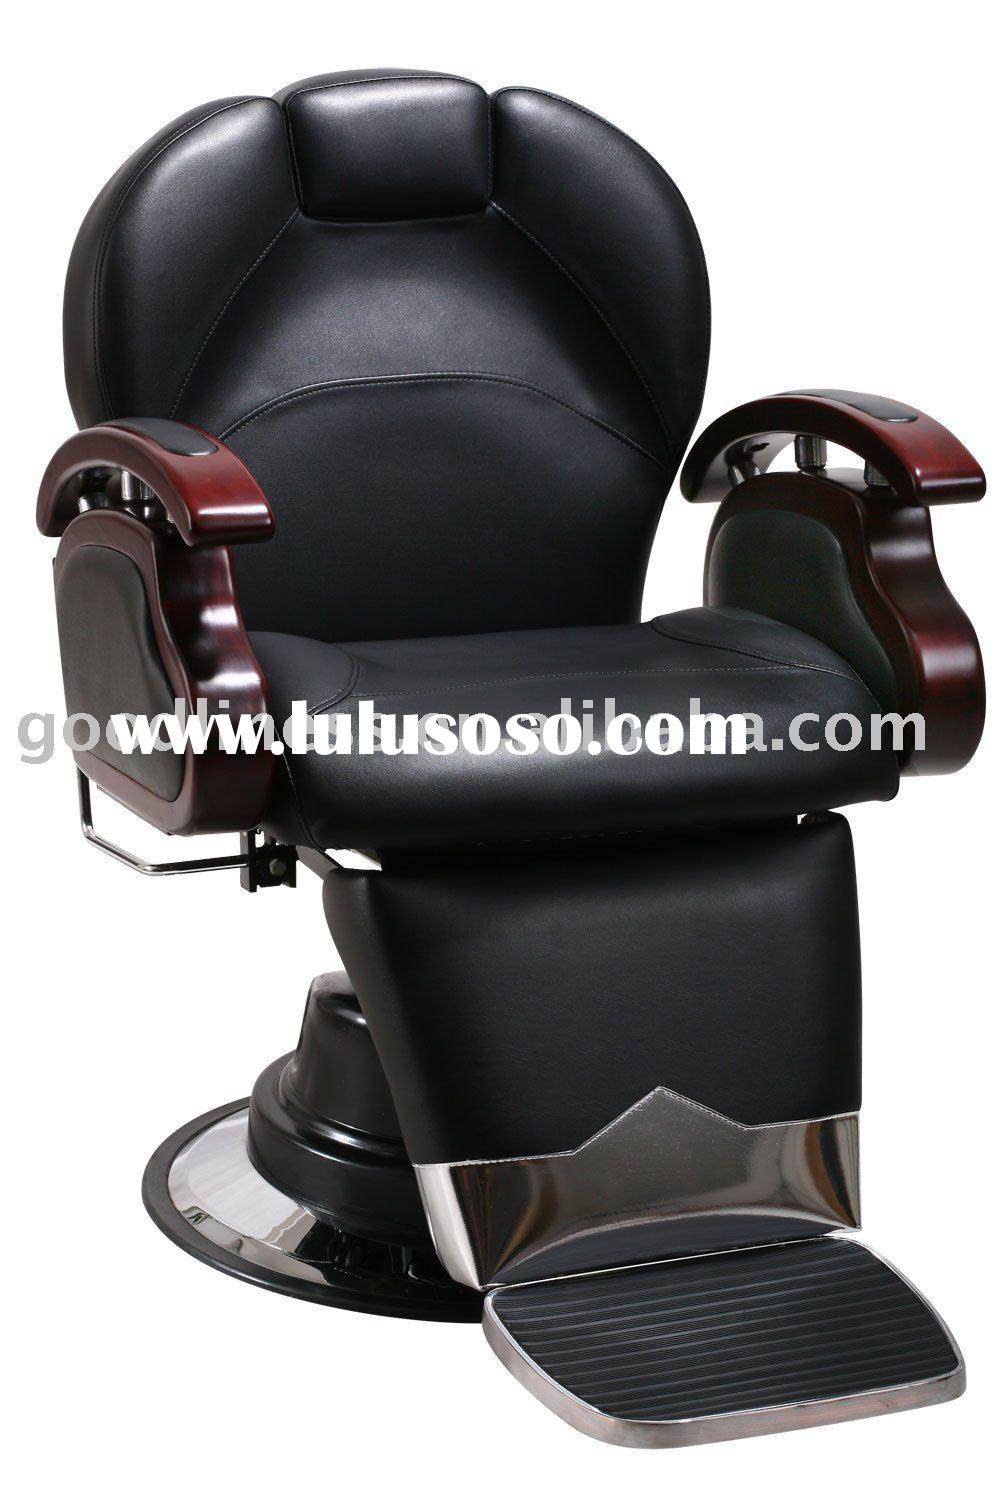 Men's Barber Chairs JY6968 (recline barber chair & leather chairs & salon chairs)